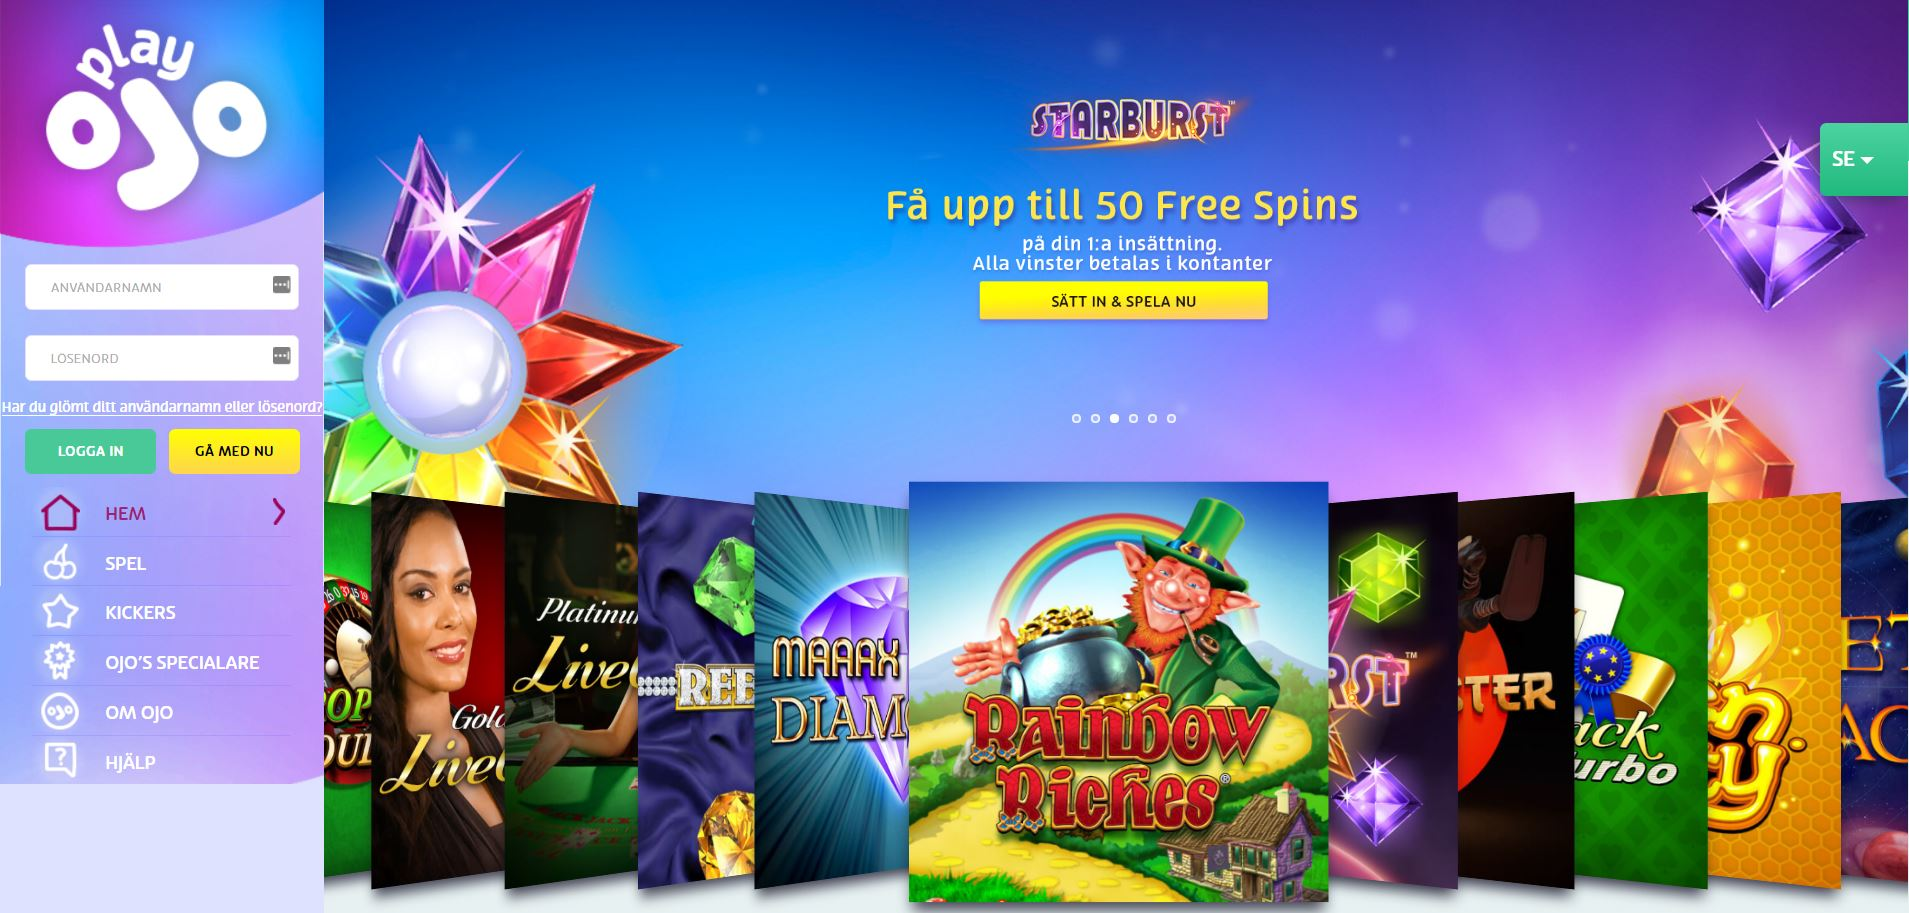 Clint Archives - Get Free Spins at the Best UK Online Casino | PlayOJO